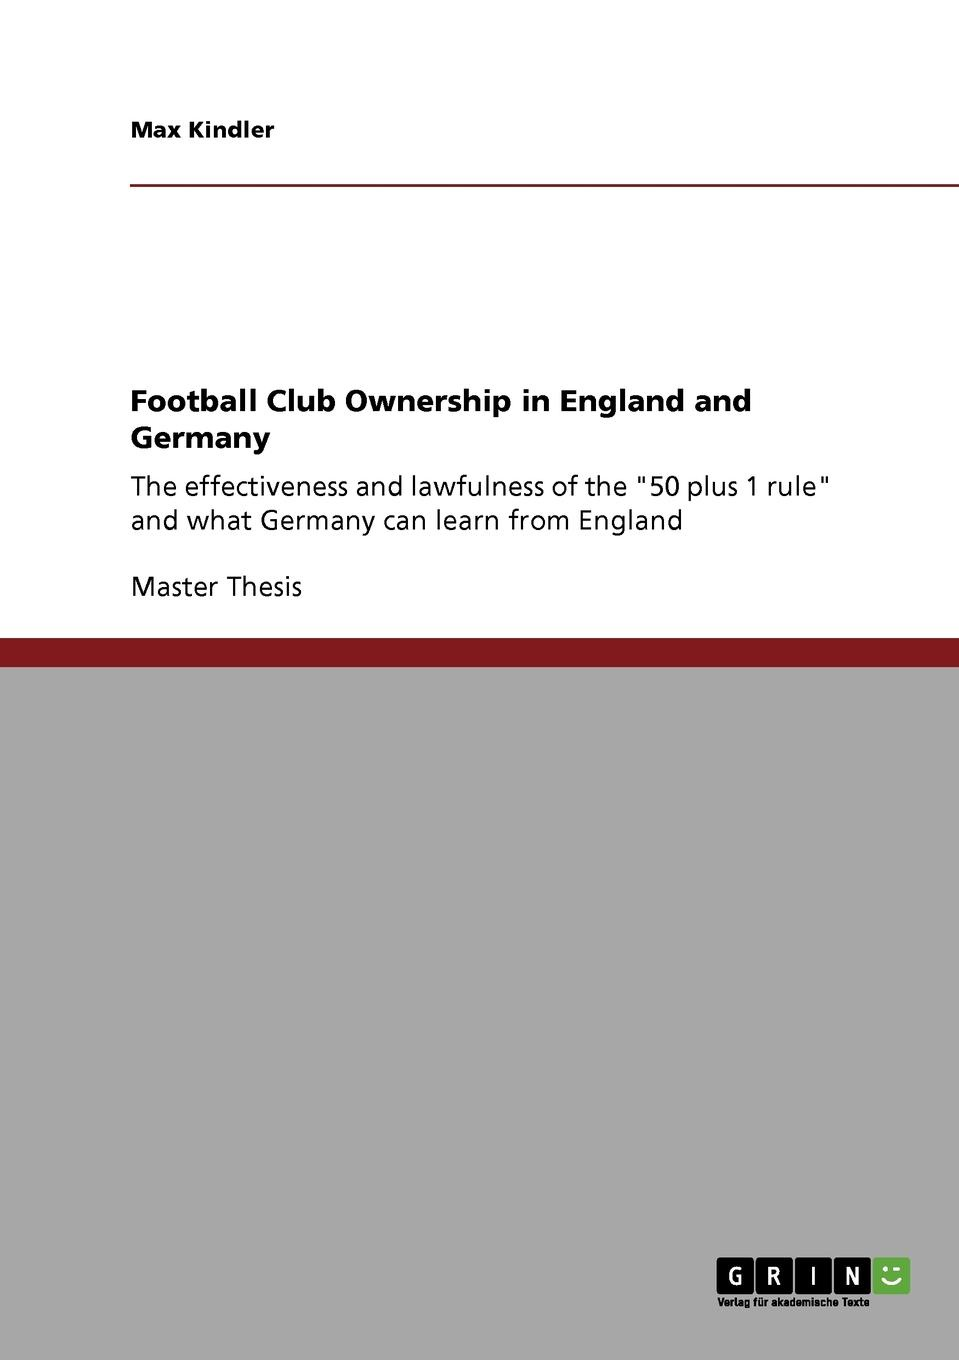 Max Kindler Football Club Ownership in England and Germany